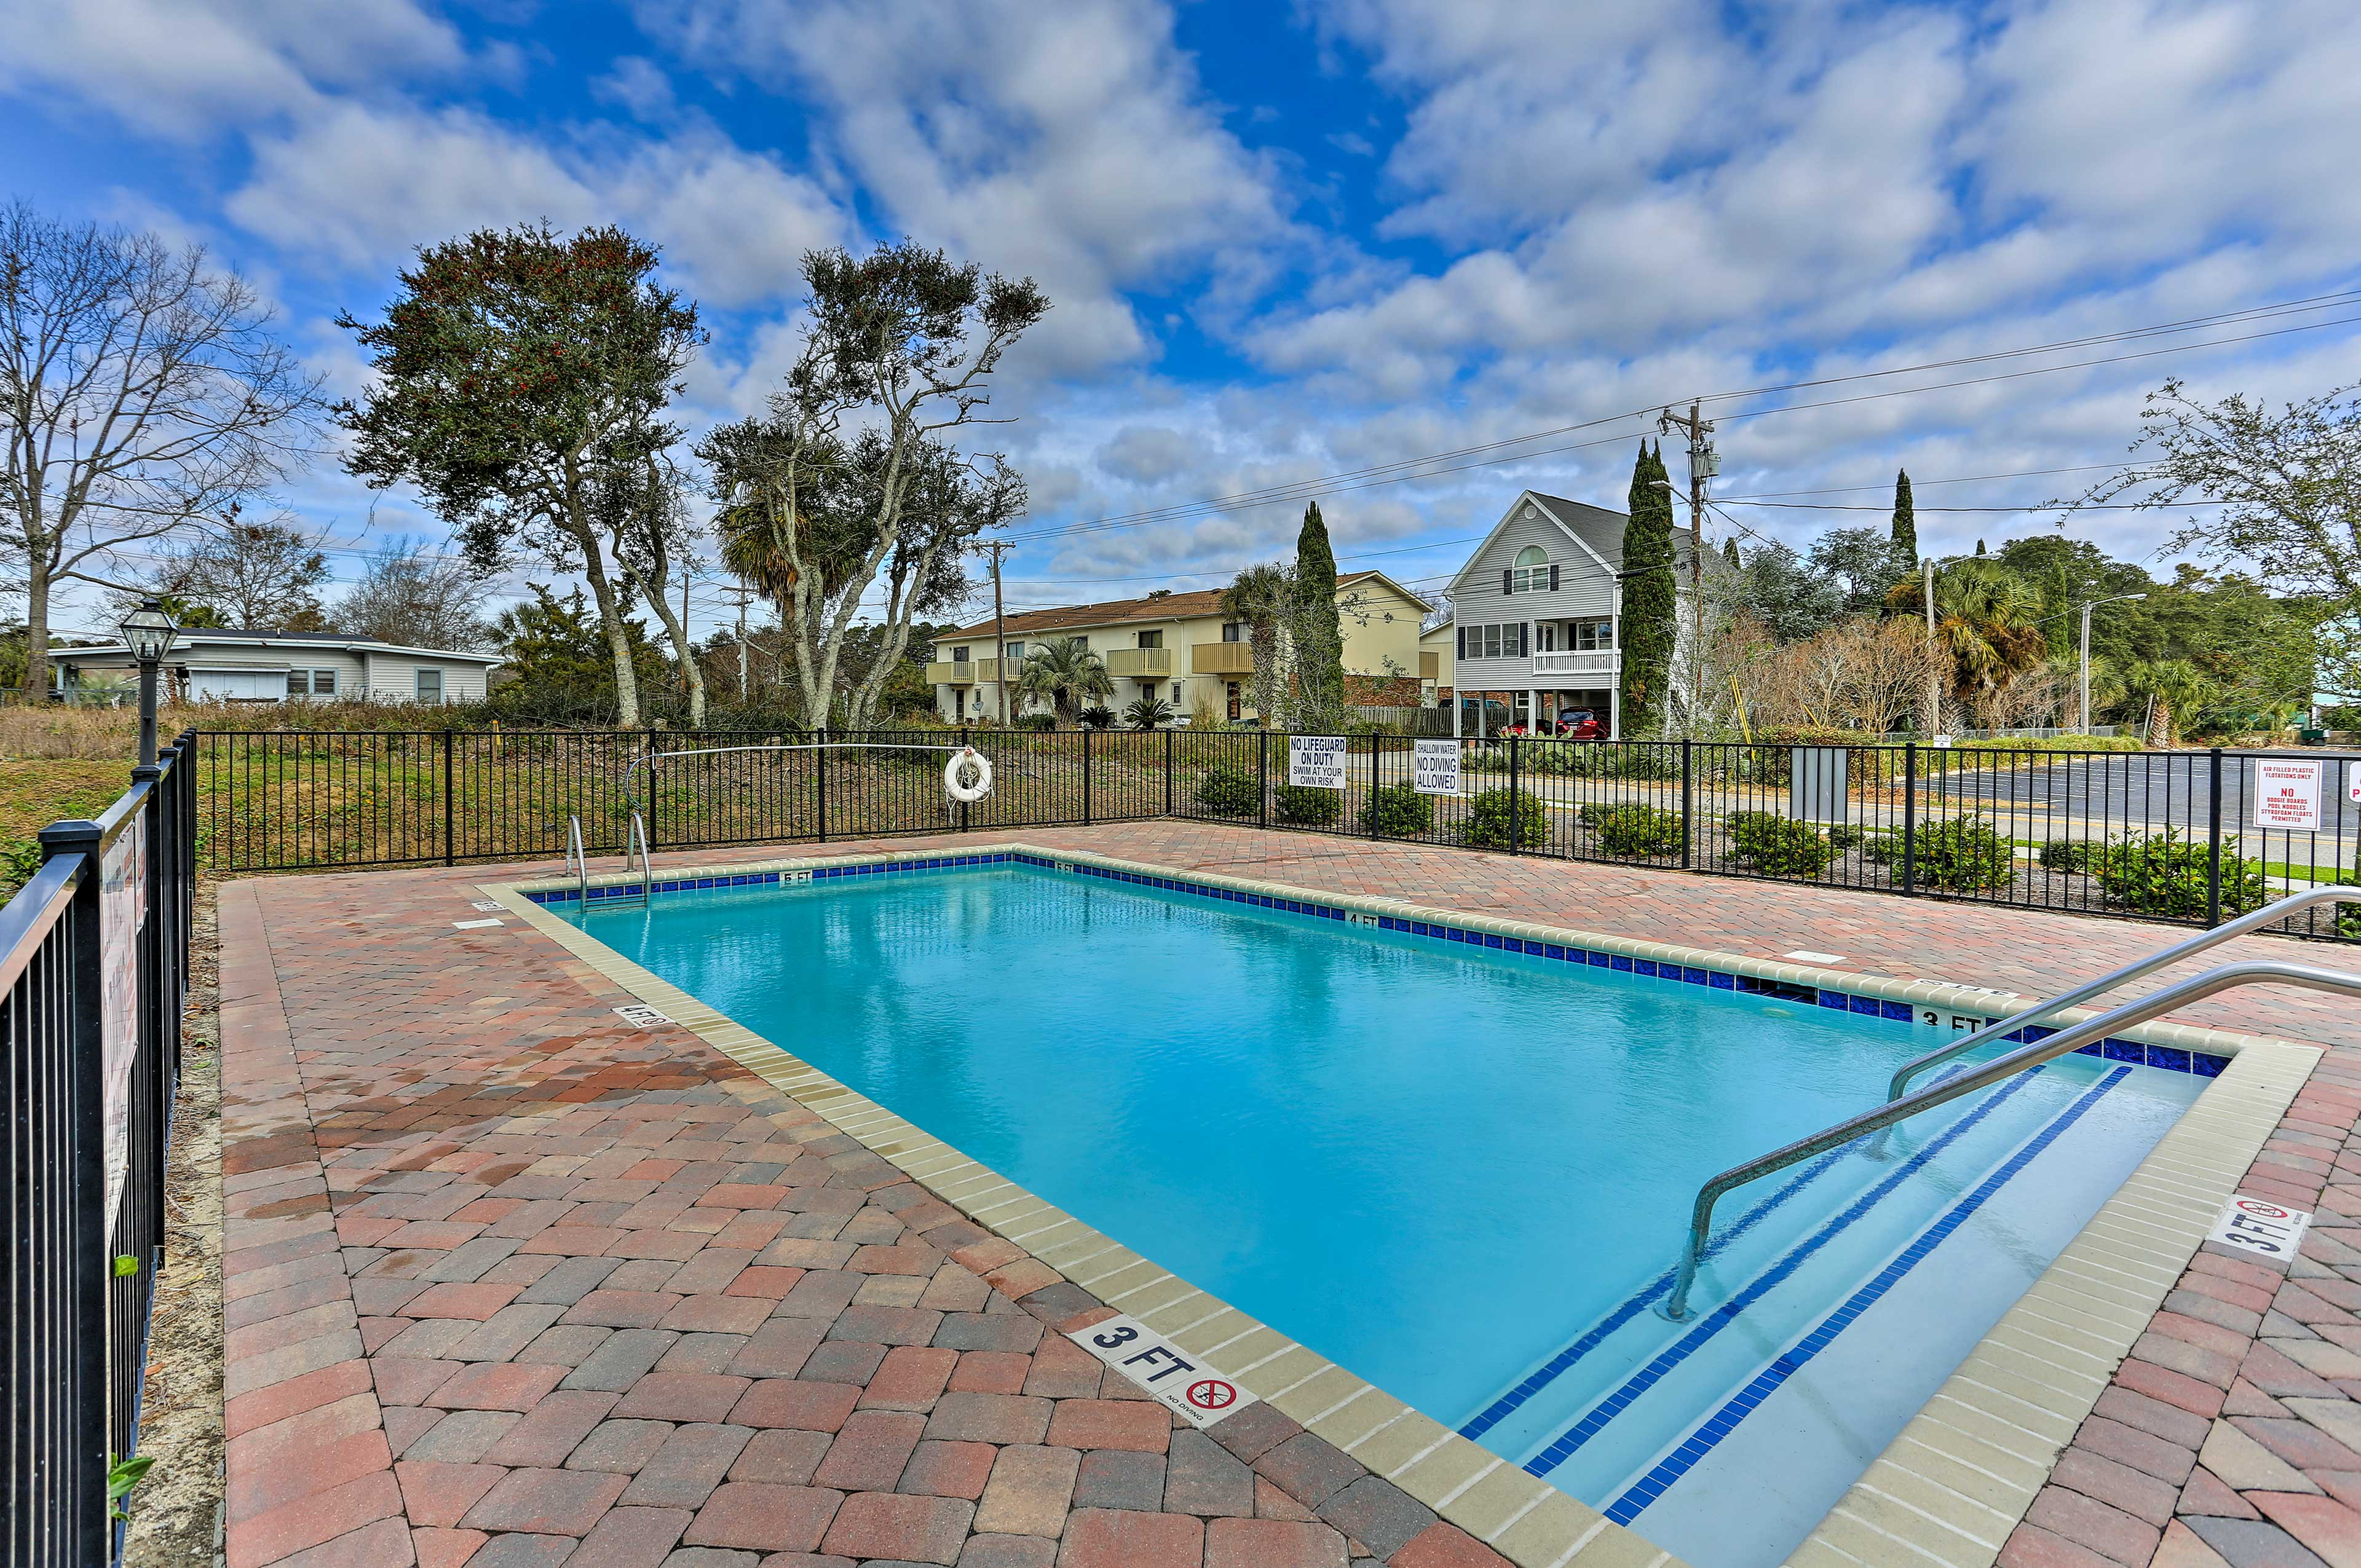 You'll love having this sparkling pool directly behind the home.